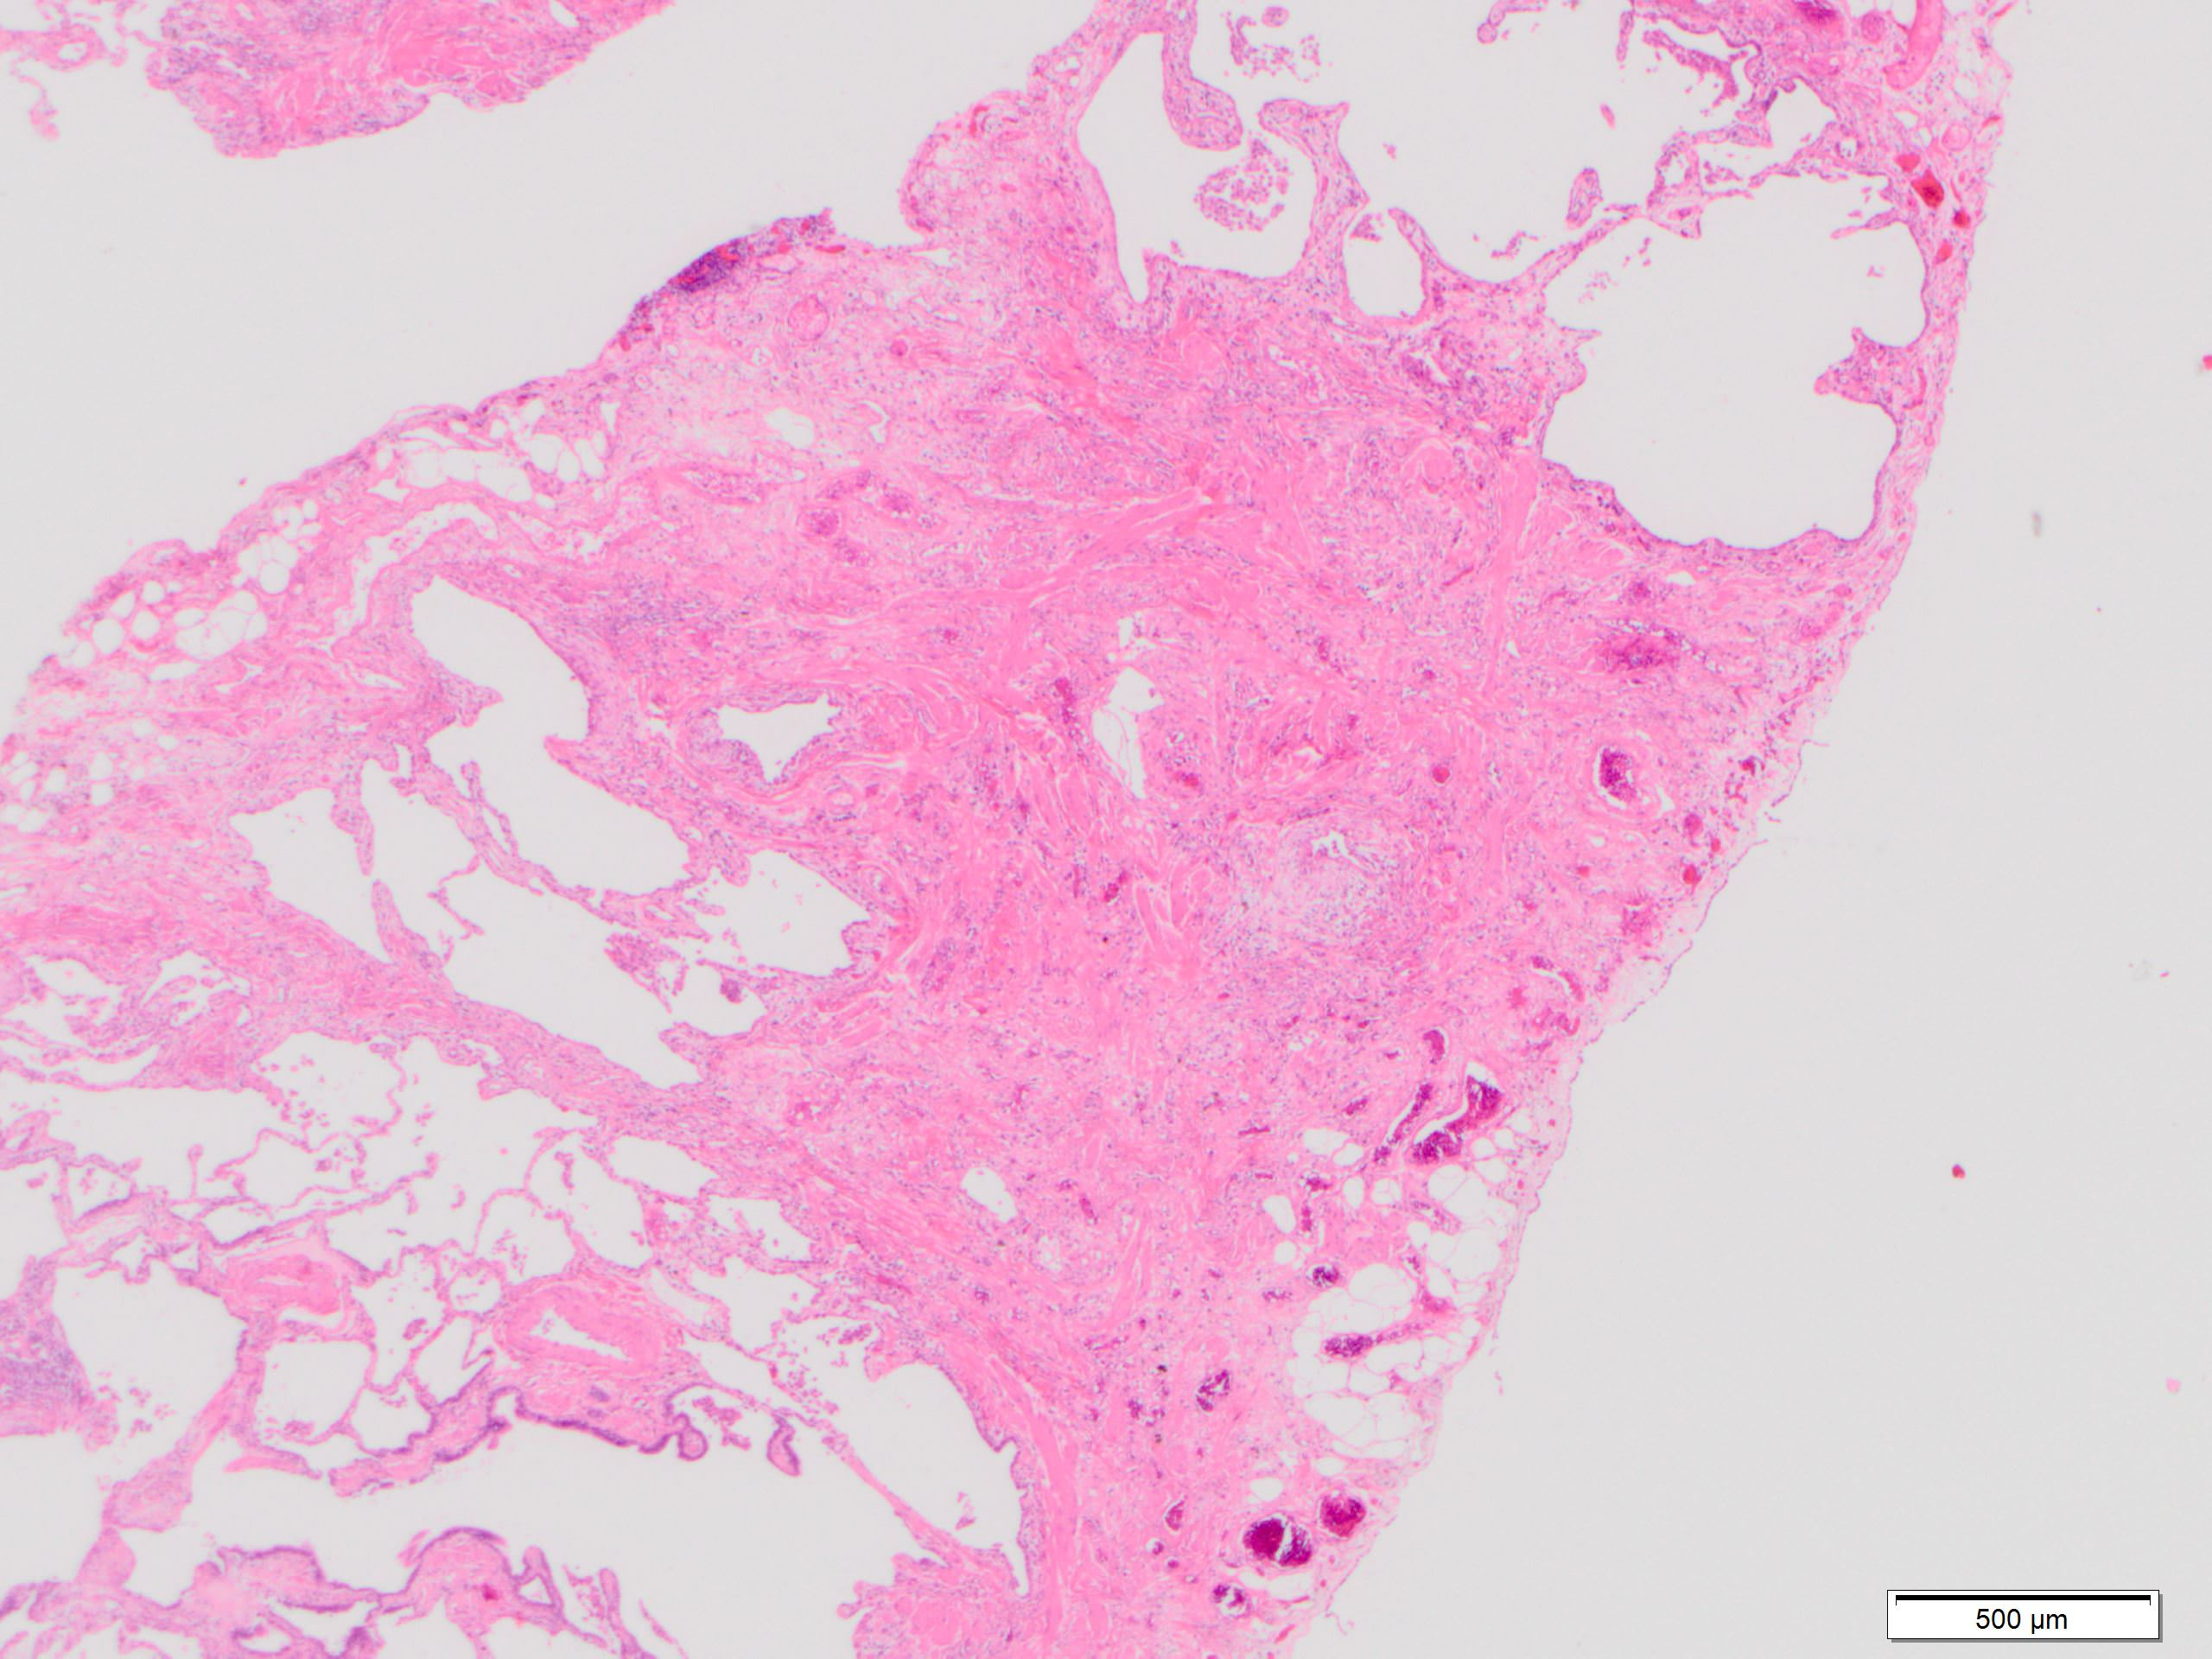 Dense fibrosis with smooth muscle hyperplasia